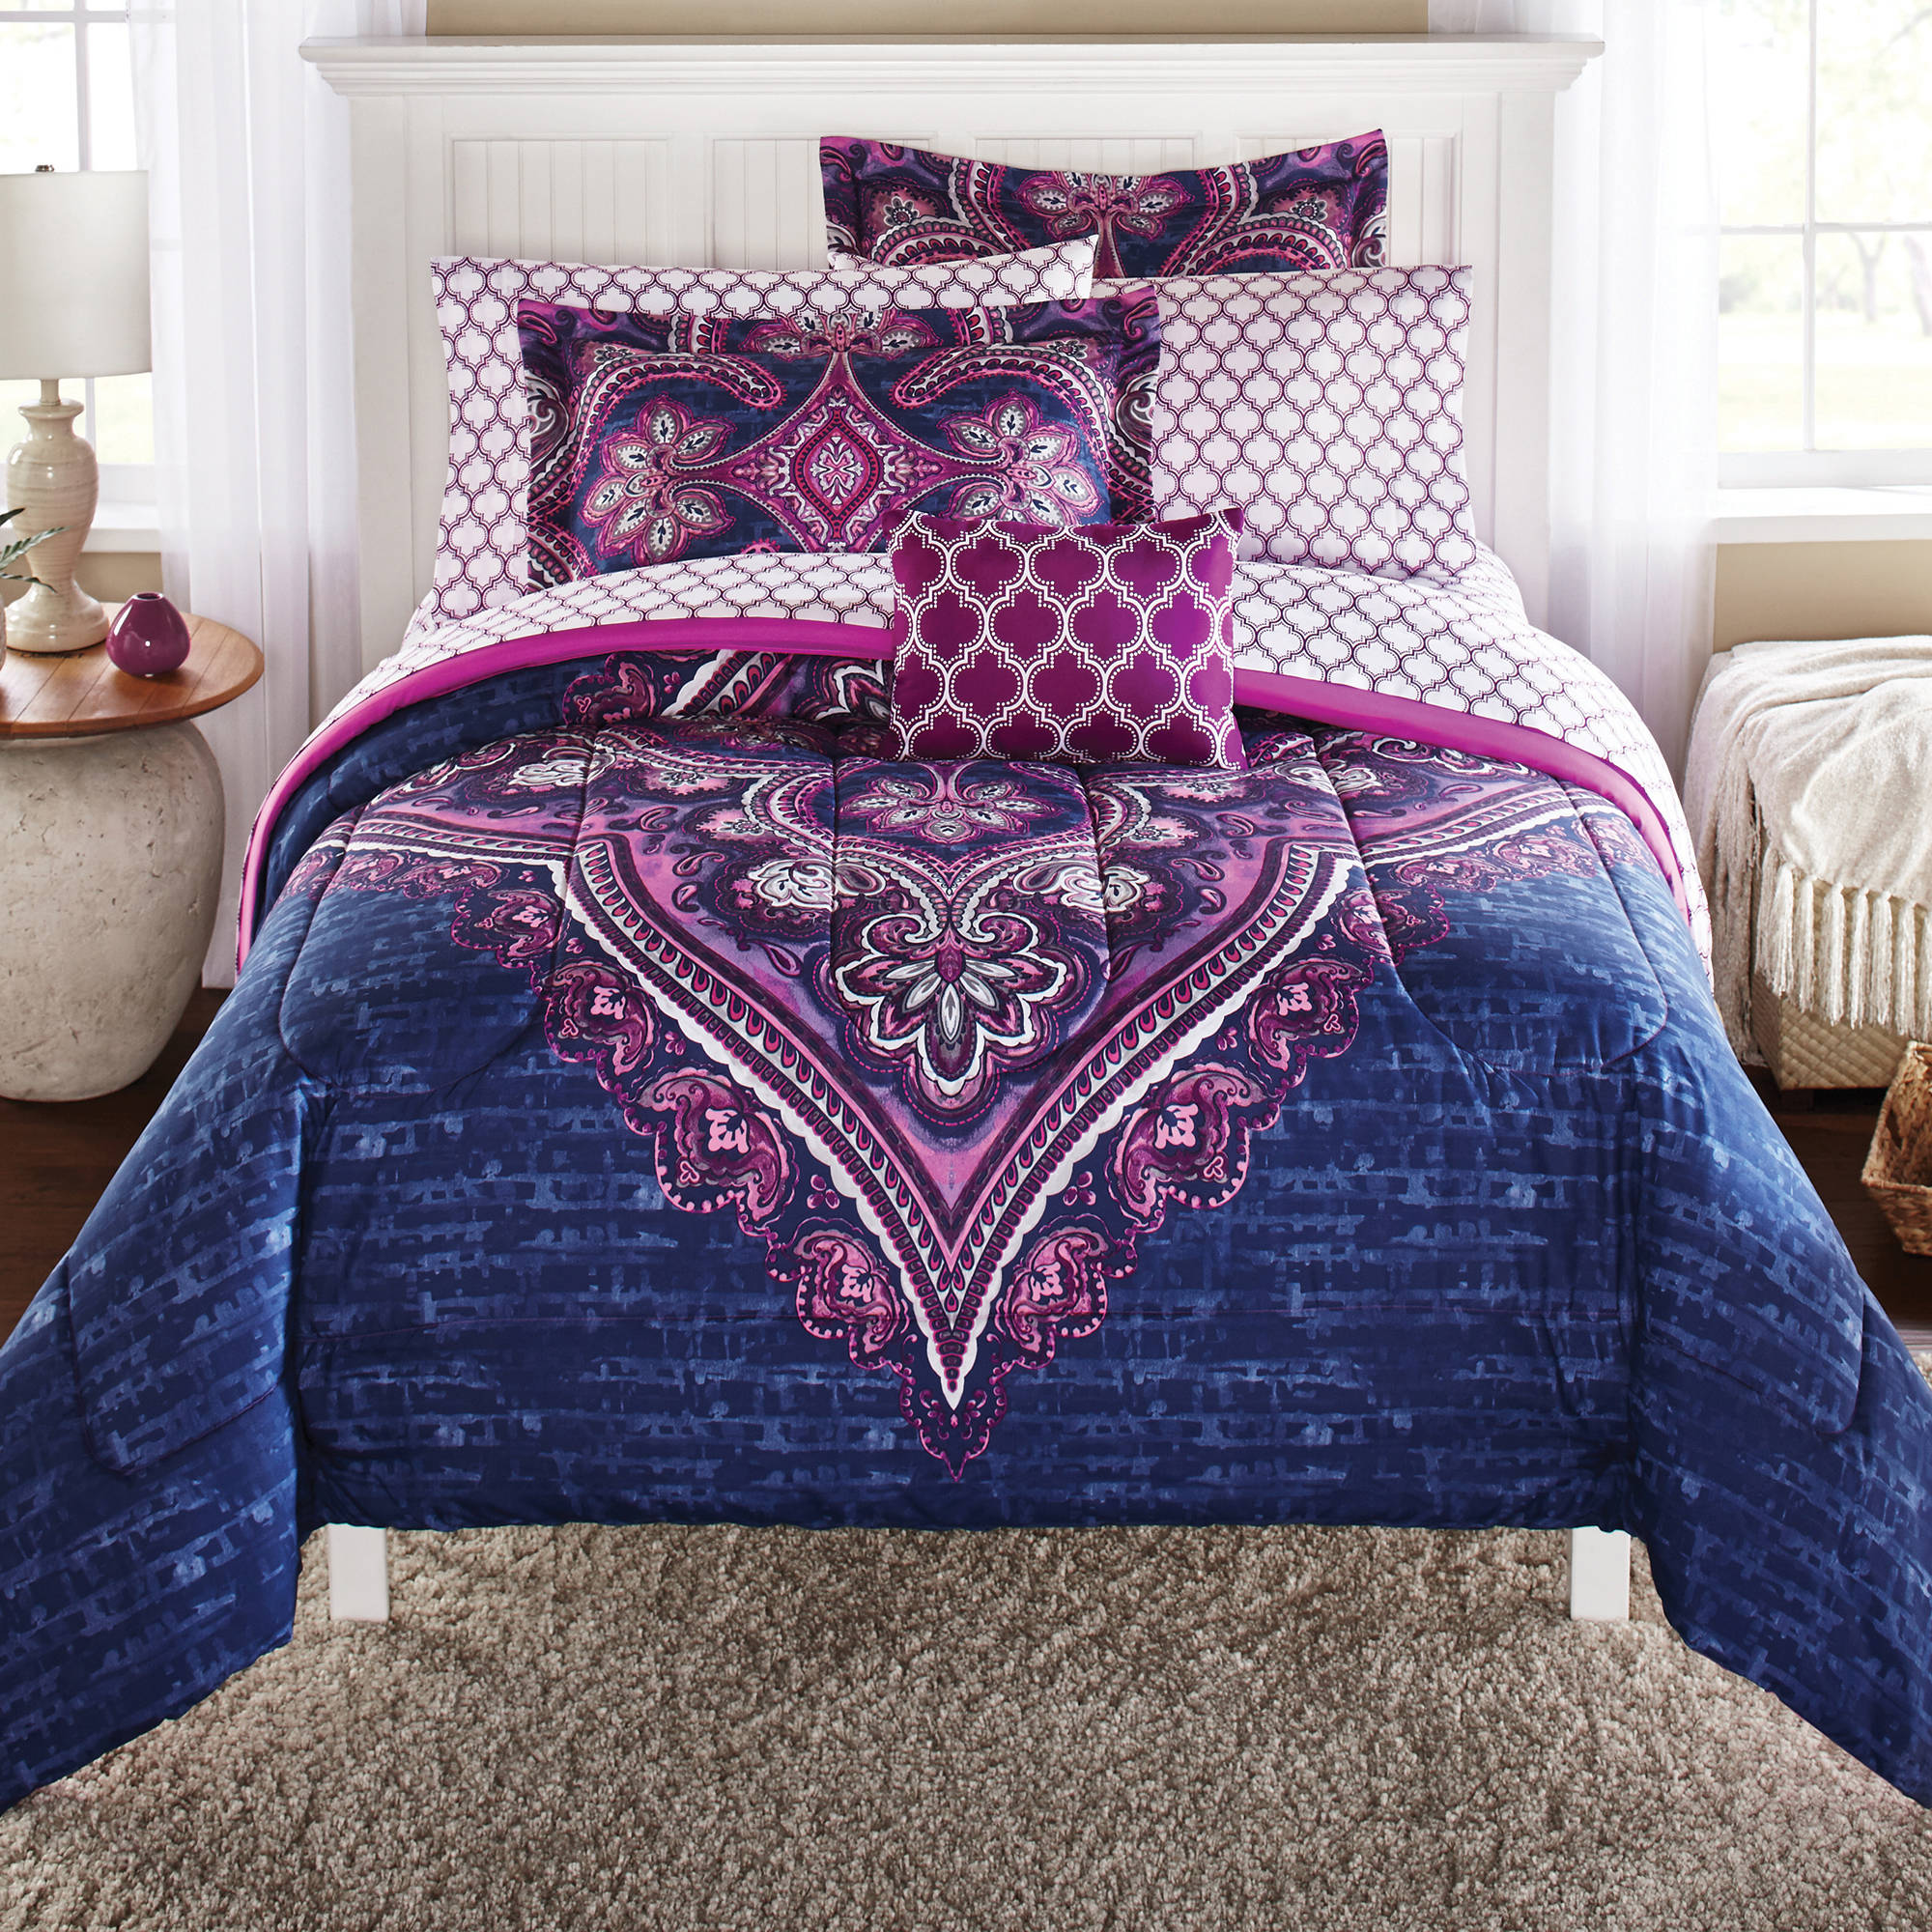 Mainstays Grace Medallion Purple Bed in a Bag Complete Bedding